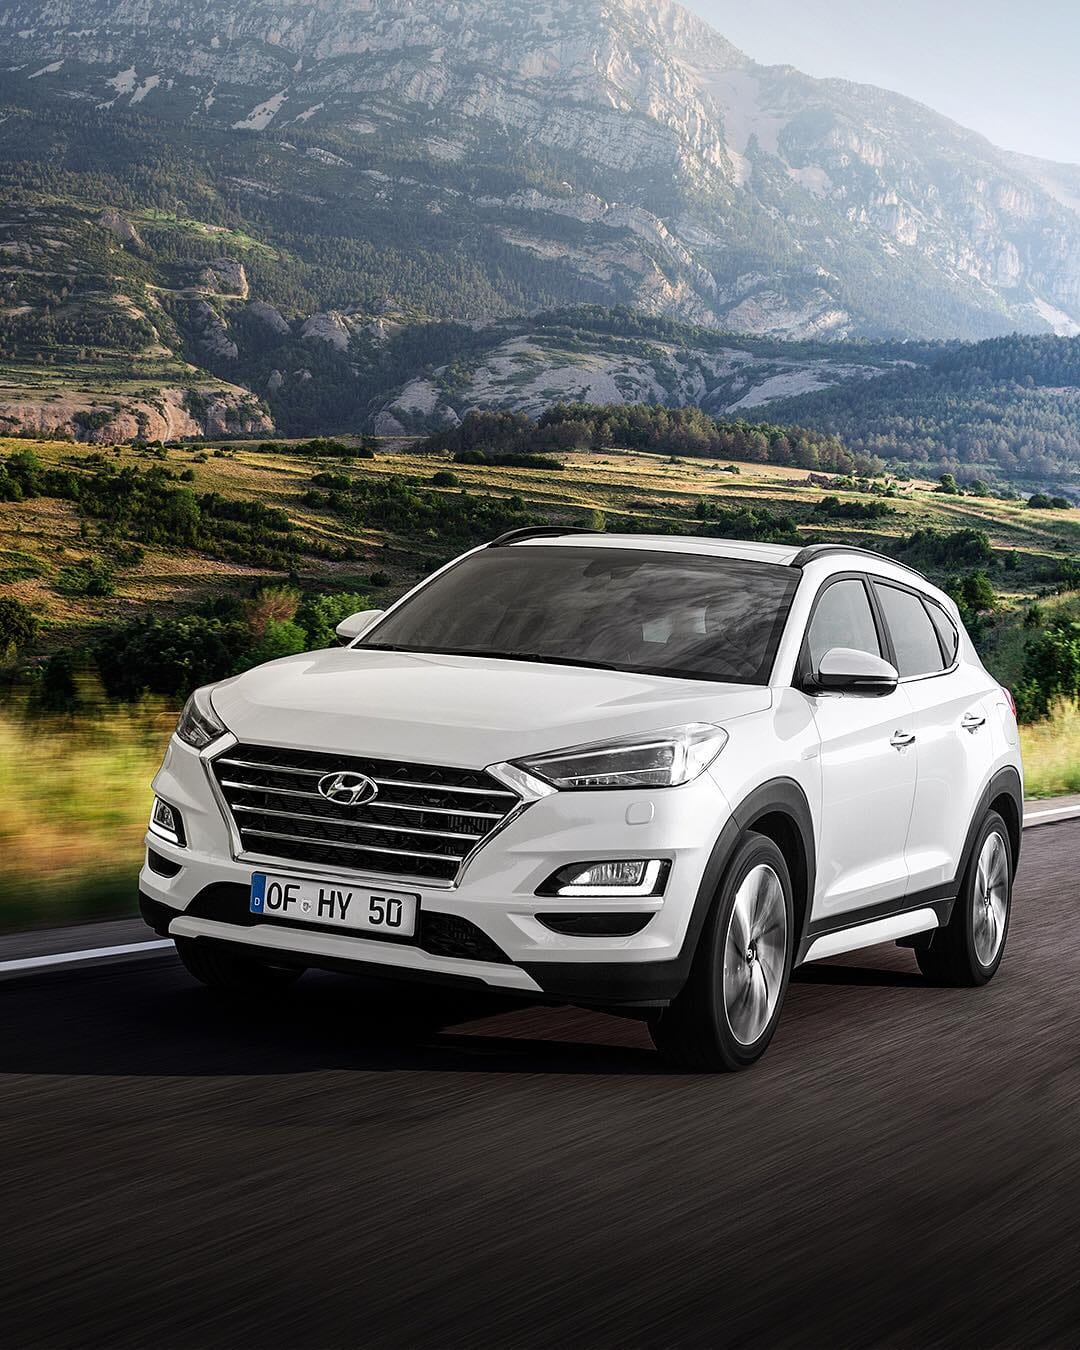 These are some of the best small SUV South Africa for 2019